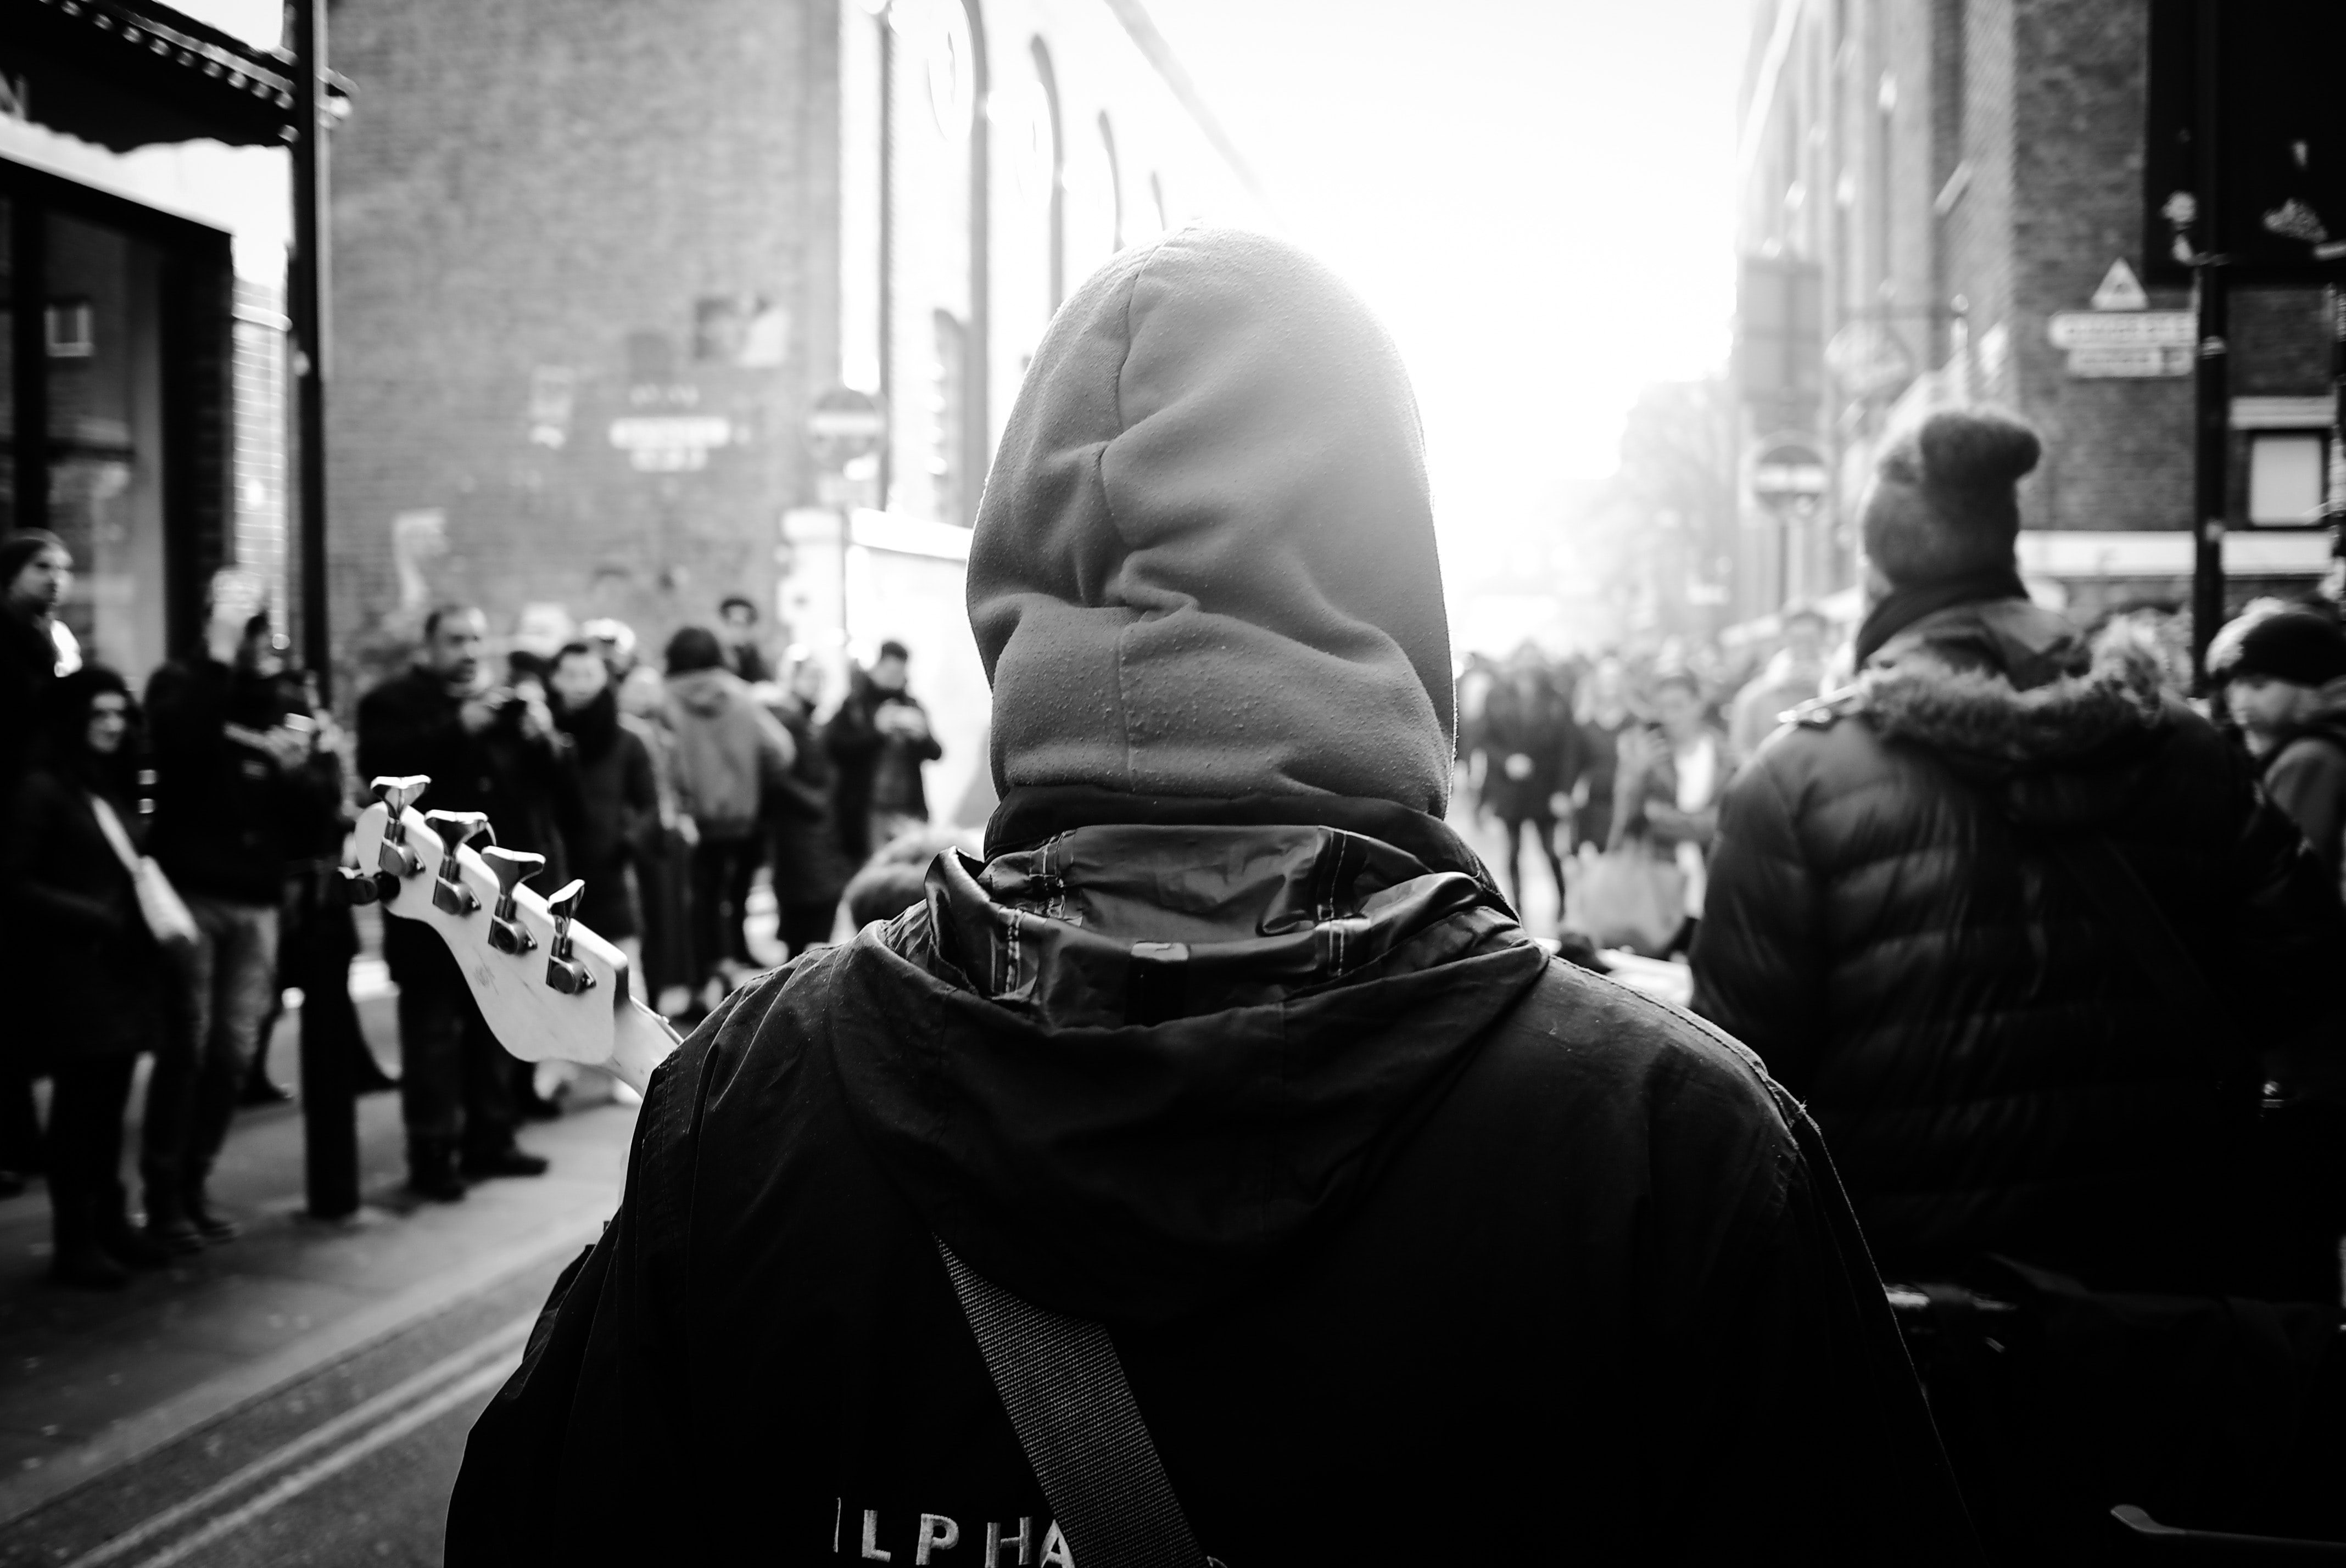 A black and white shot from behind civilians wearing hooded jackets and walking through London